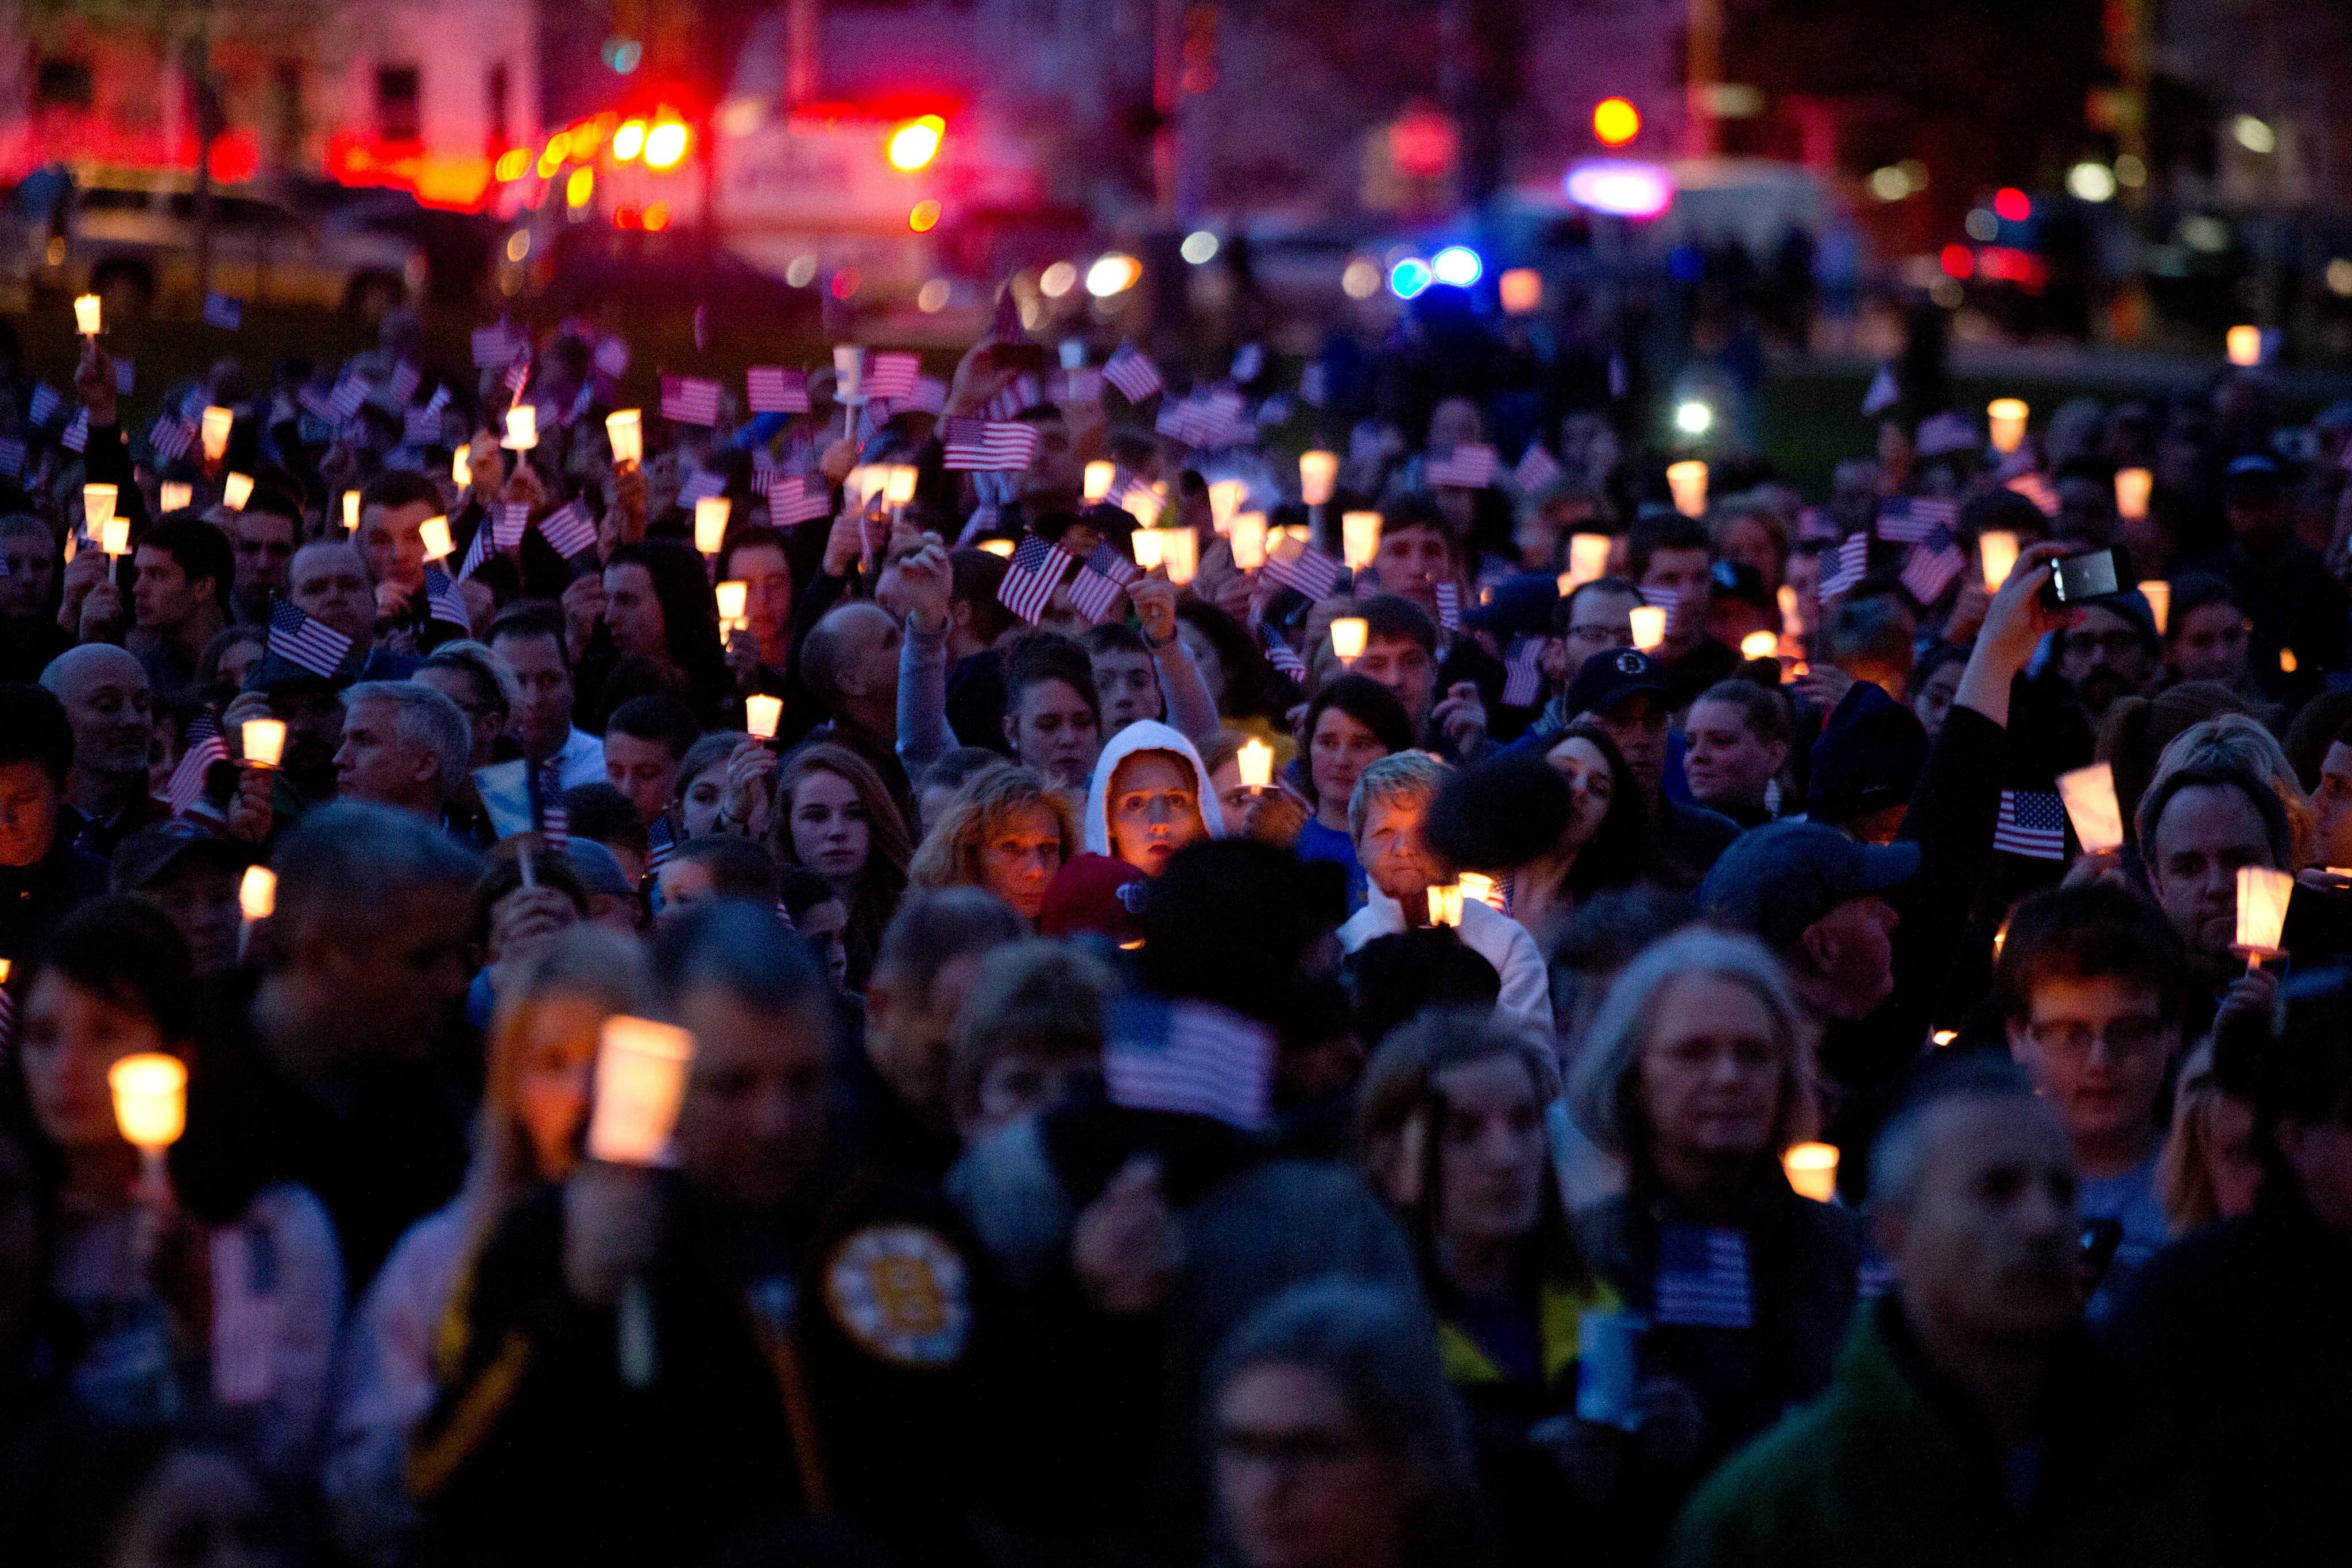 Mourners attend candlelight vigil for Martin Richard at Garvey Park, near Richard's home in the Dorchester section of Boston, on Tuesday, April 16, 2013. Martin is the 8-year-old boy killed in the Boston Marathon bombing.